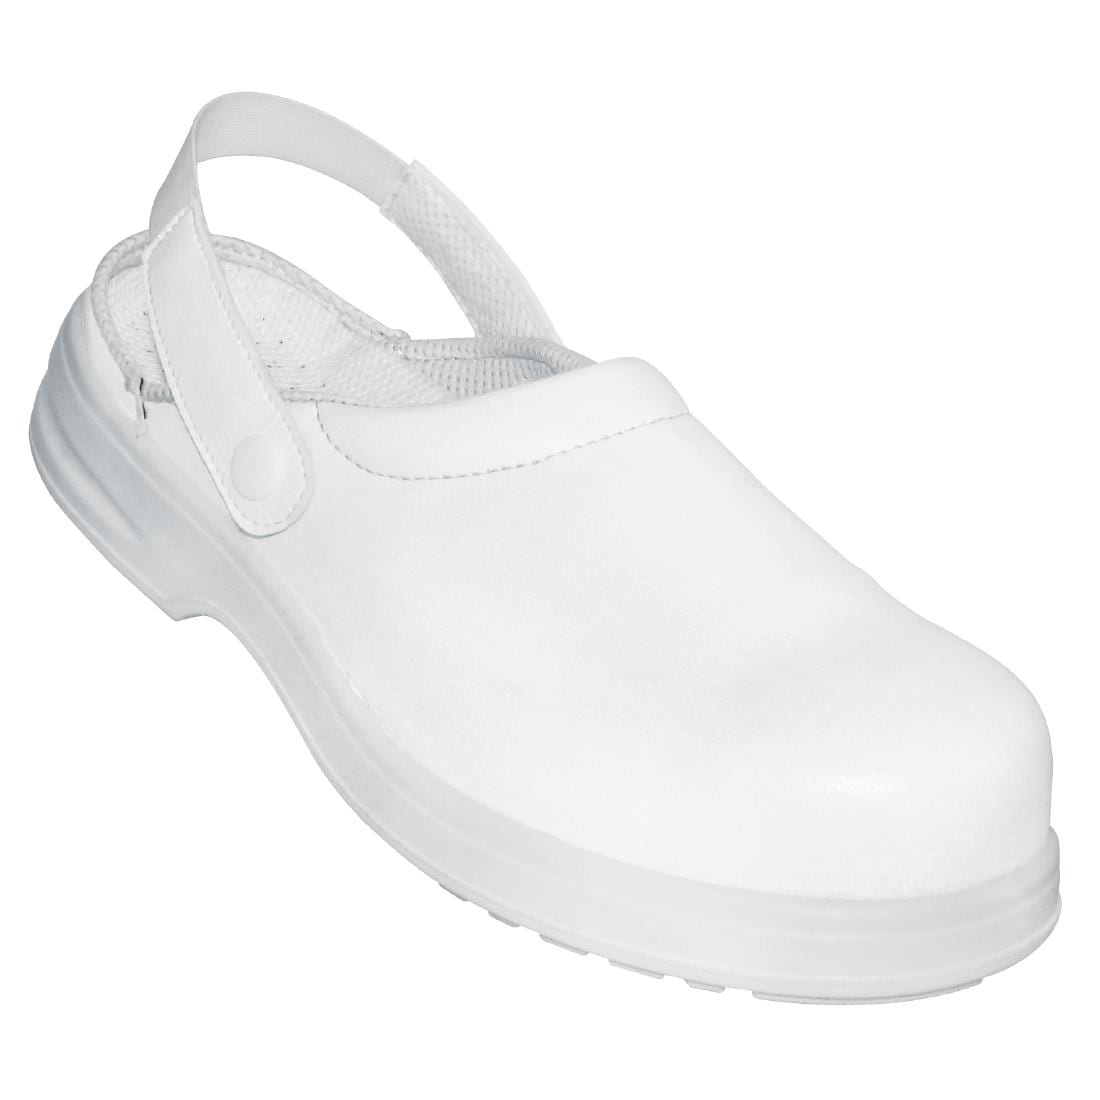 Lites Unisex Safety Clog White 36